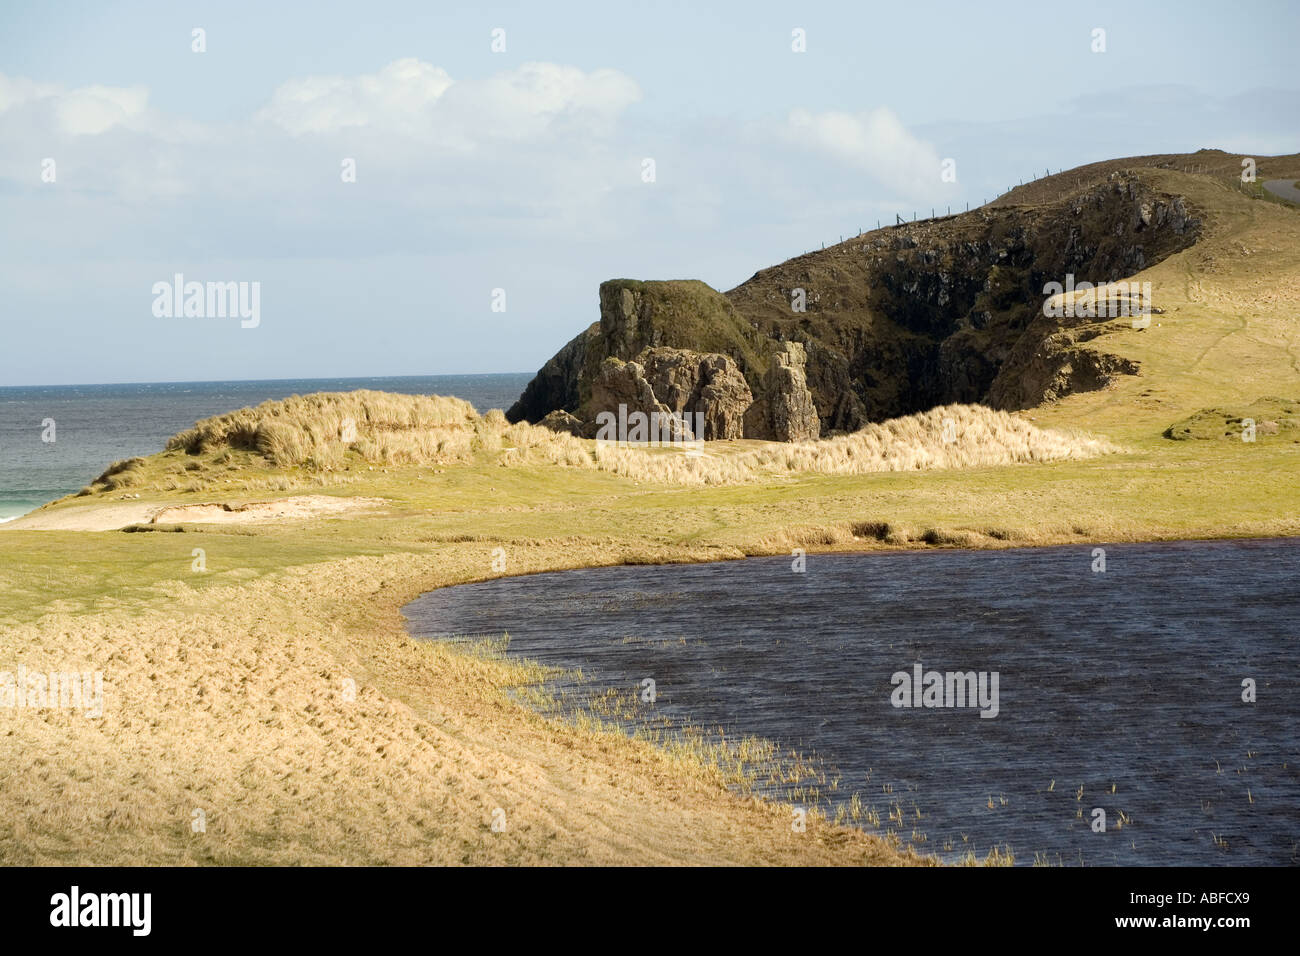 UK Scotland Western Isles Outer Hebrides Lewis Tolsta Traigh Ghearadha coastal loch and cliffs - Stock Image